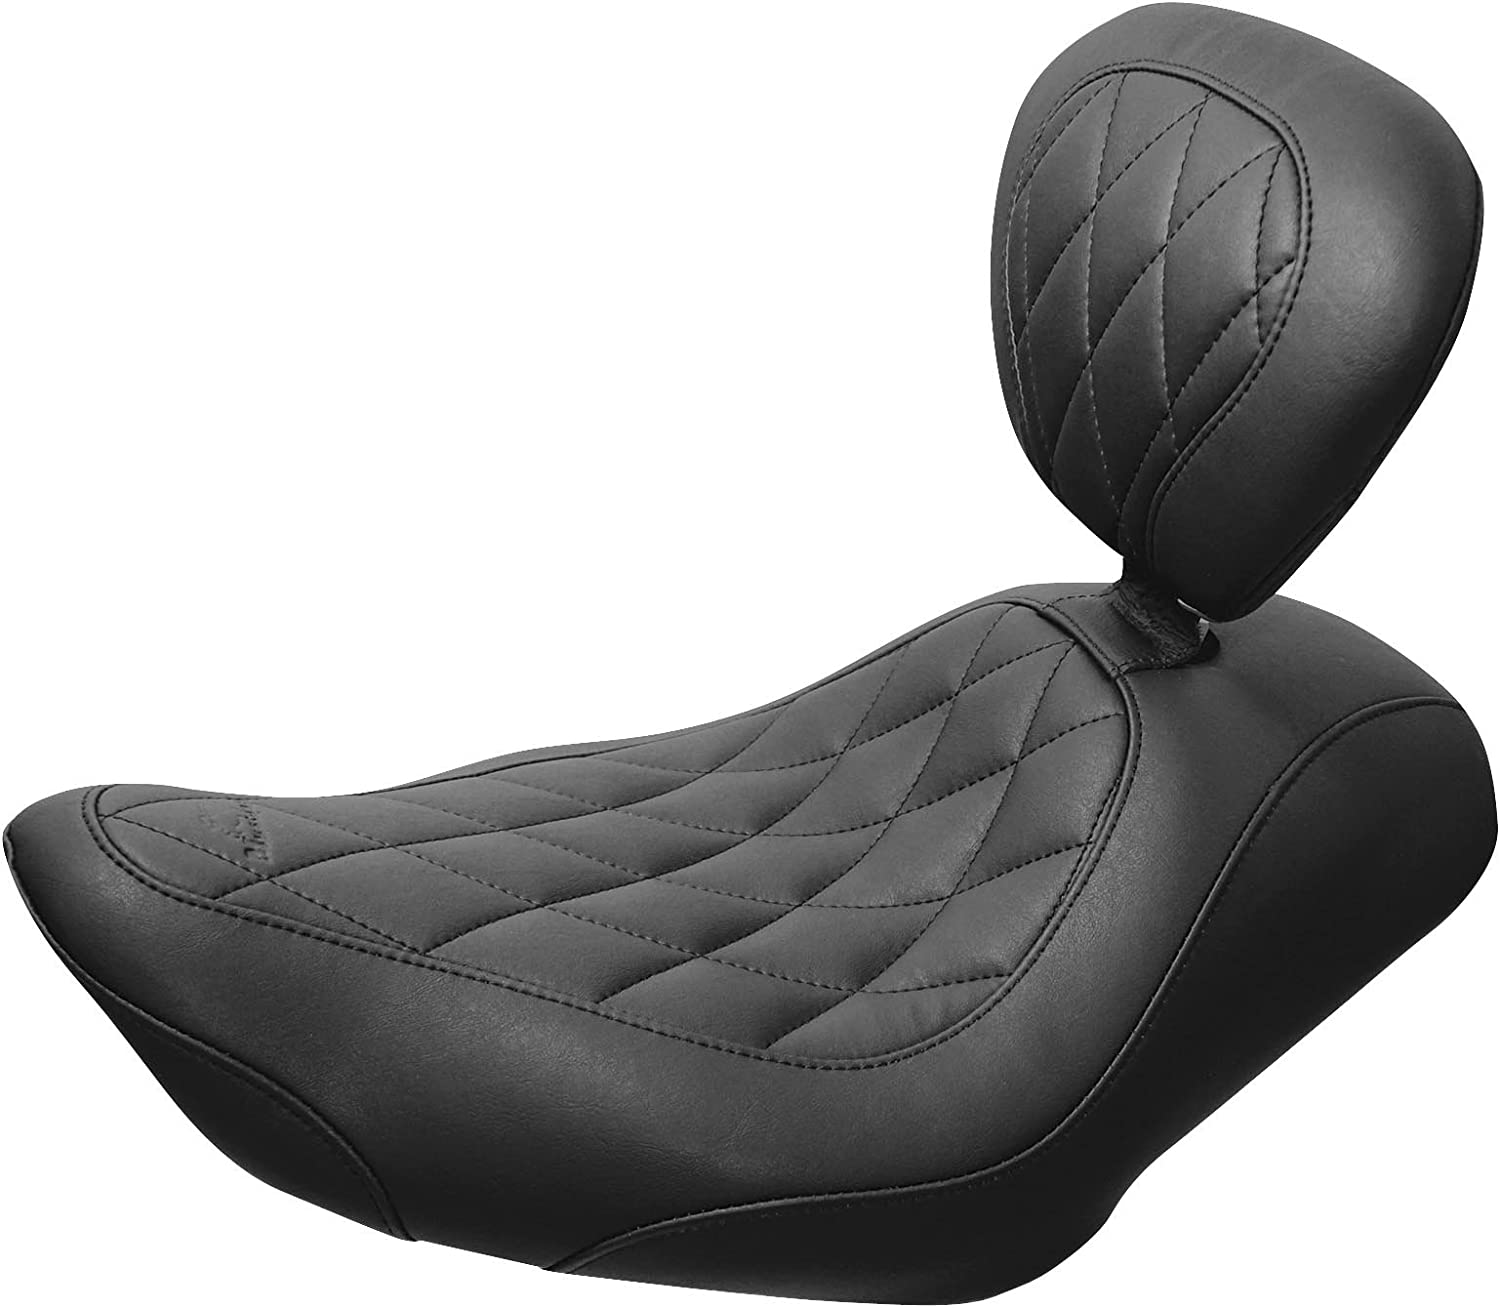 Mustang Motorcycle Seats Black Wide Tripper Solo Seat with Diamond Stitching and Backrest